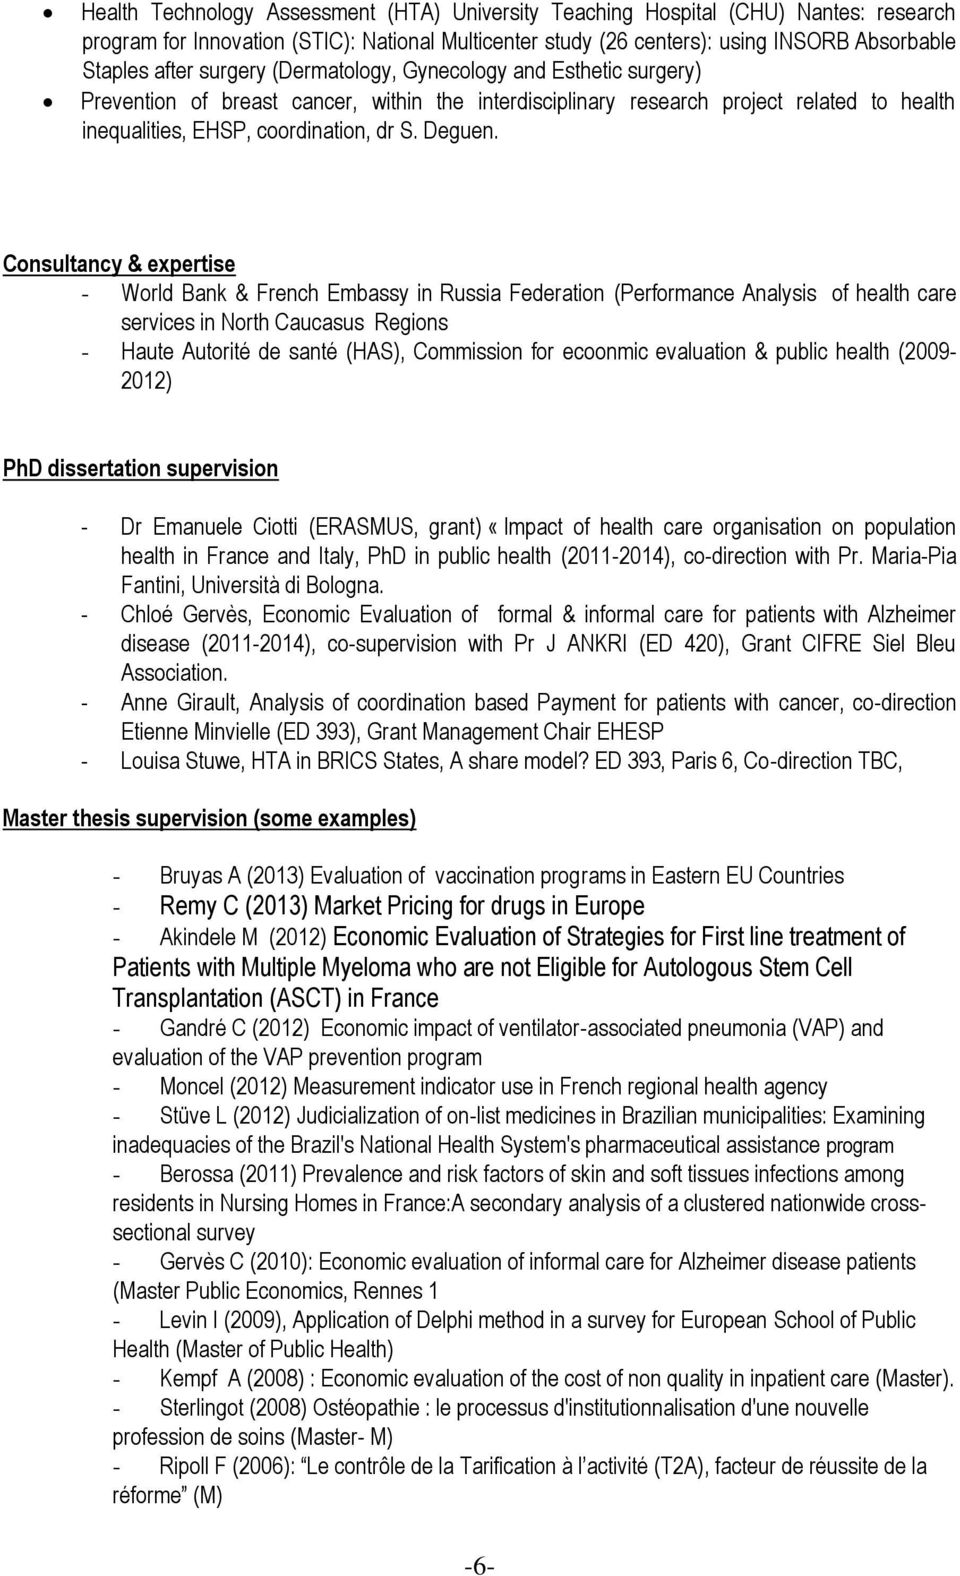 Consultancy & expertise - World Bank & French Embassy in Russia Federation (Performance Analysis of health care services in North Caucasus Regions - Haute Autorité de santé (HAS), Commission for